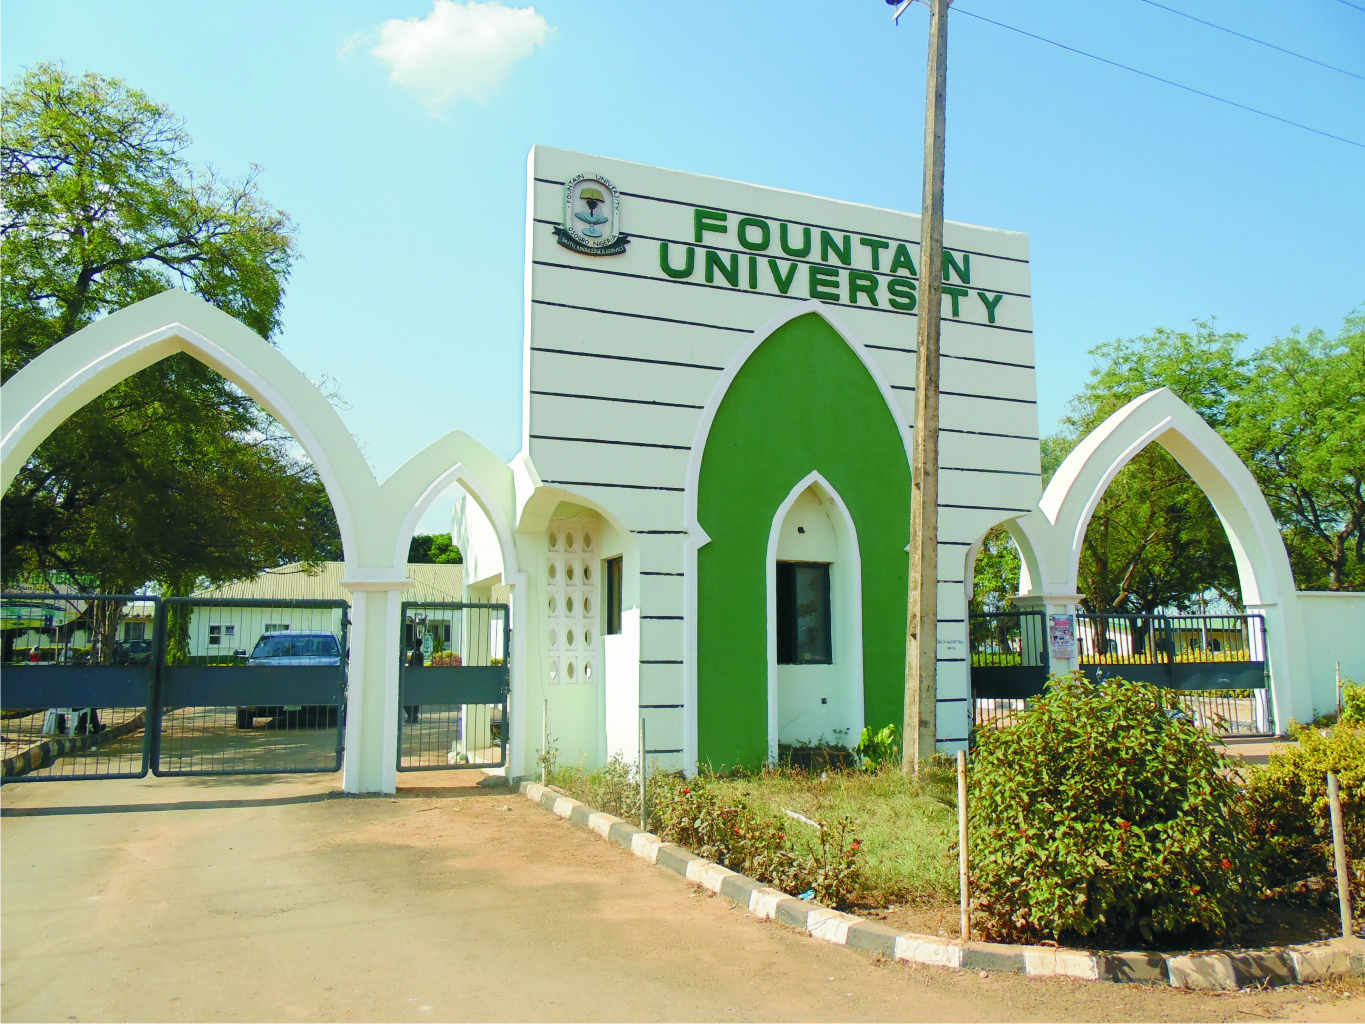 Fountain University 7th Convocation Ceremony And 10th year Anniversary Schedule